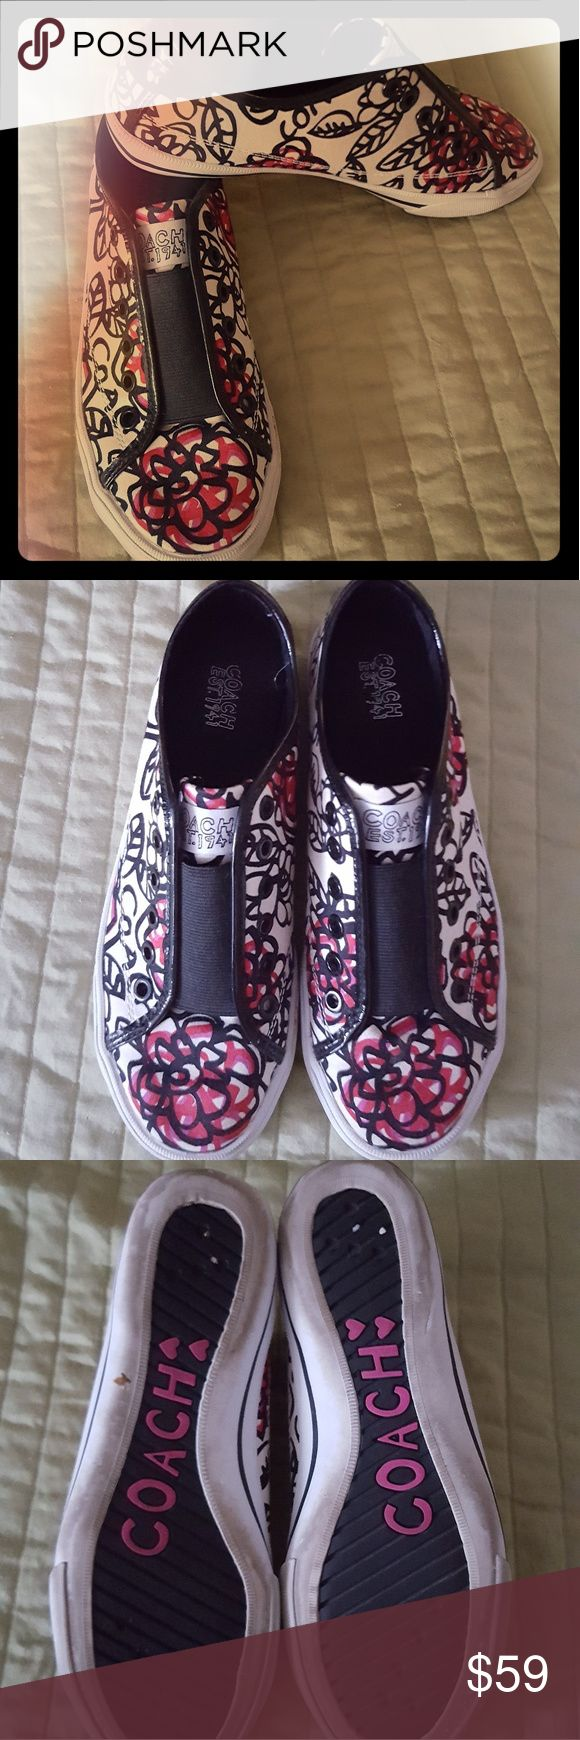 Coach sneakers Gently loved Coach sneakers, slip on, very comfortable. Coach Shoes Sneakers